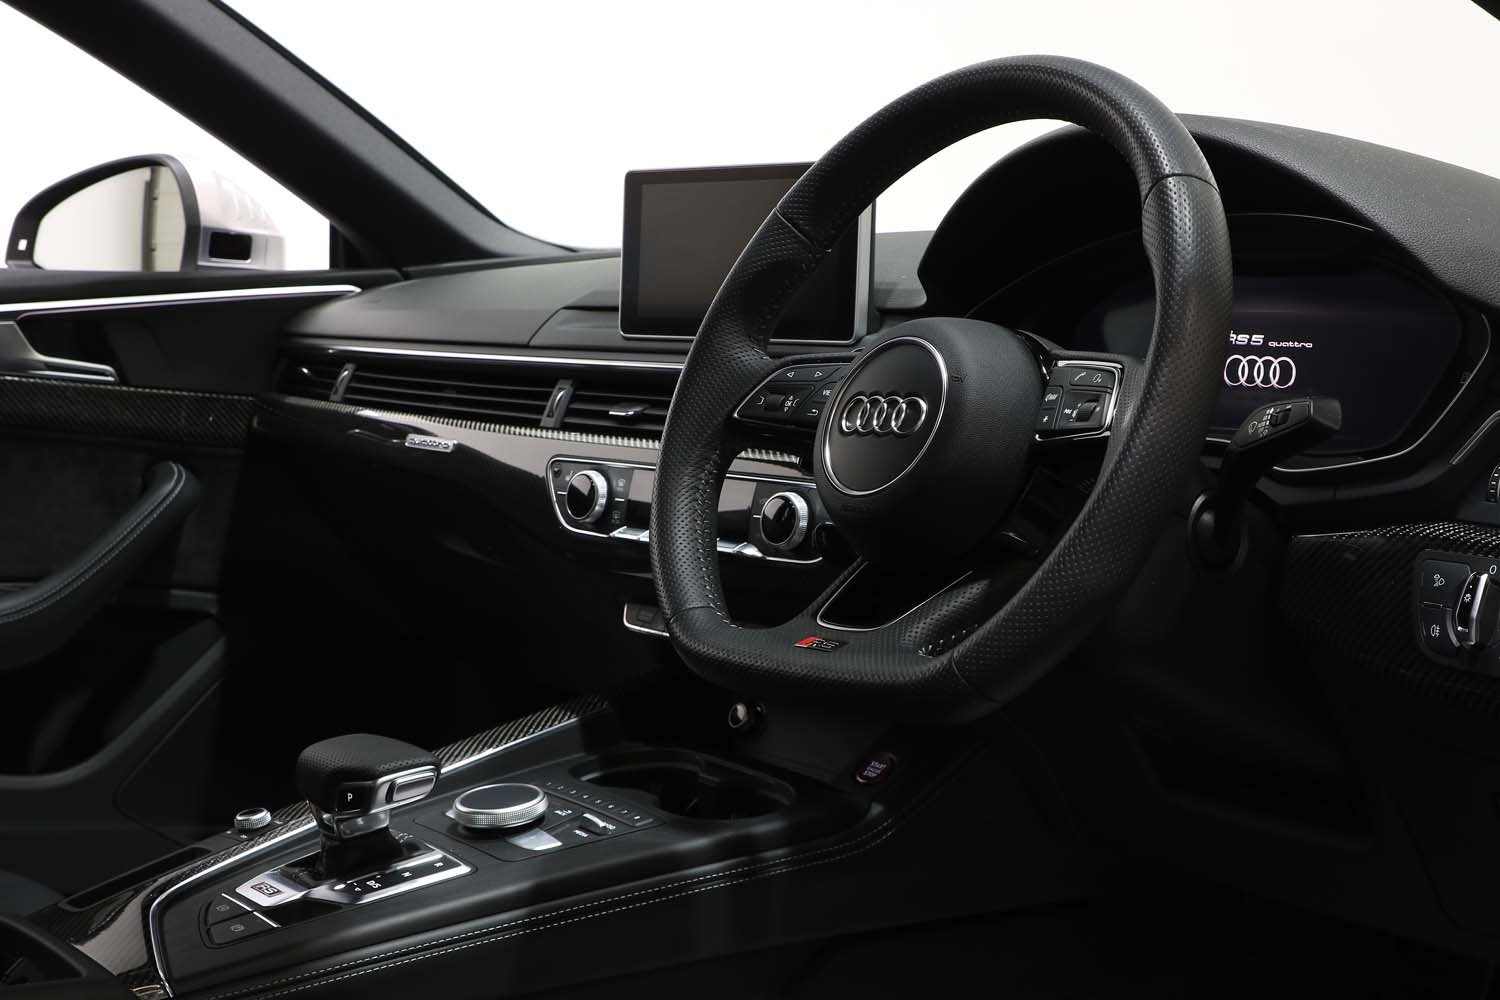 2017 67 AUDI RS5 2.9 TFSI QUATTRO TIPTRONIC  For Sale (picture 5 of 6)